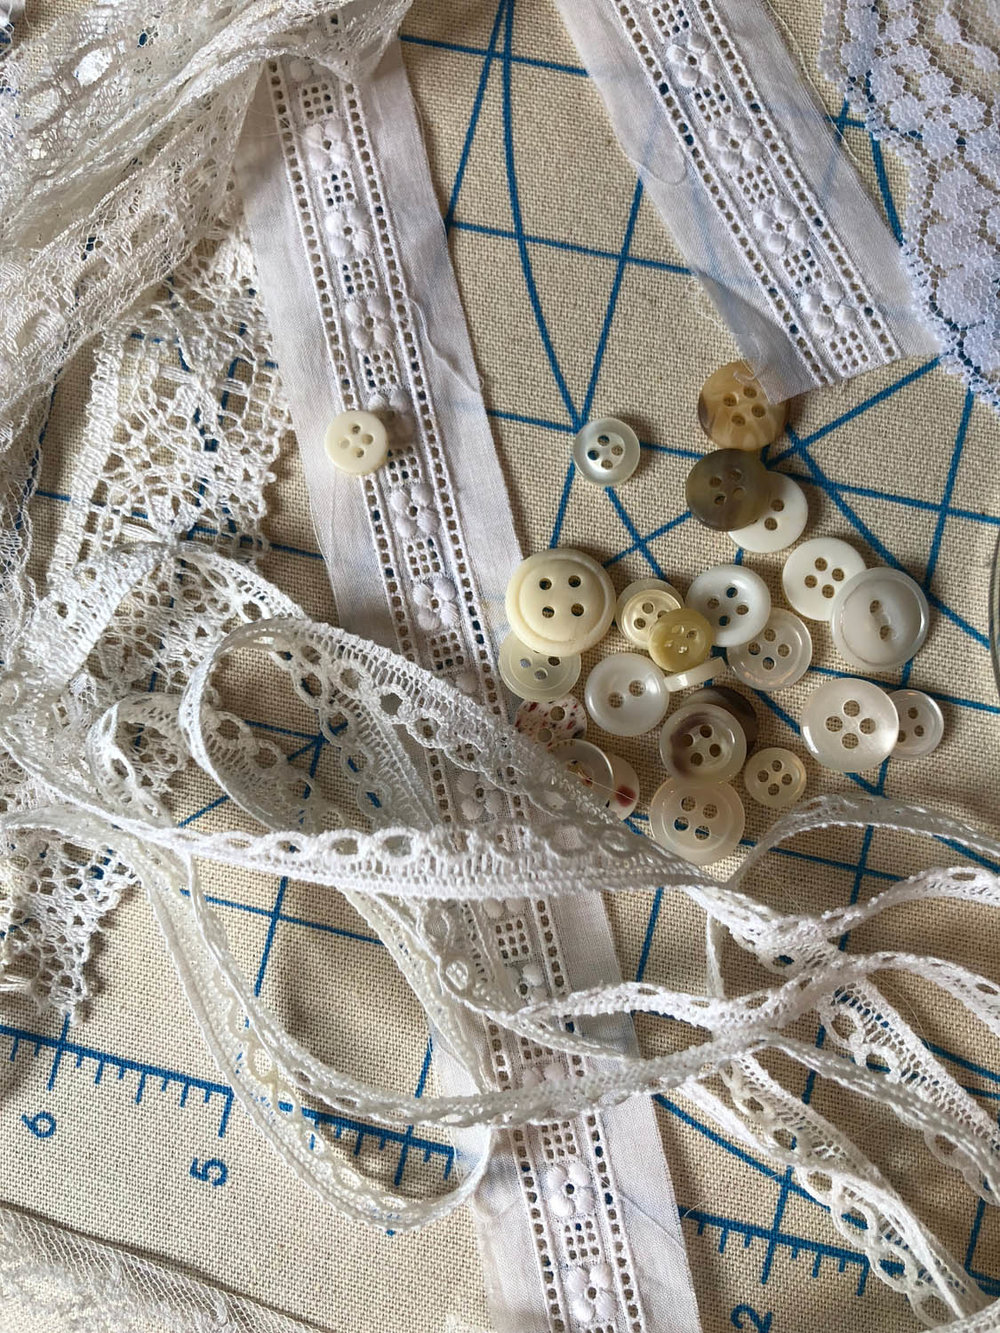 lace remnants and antique buttons